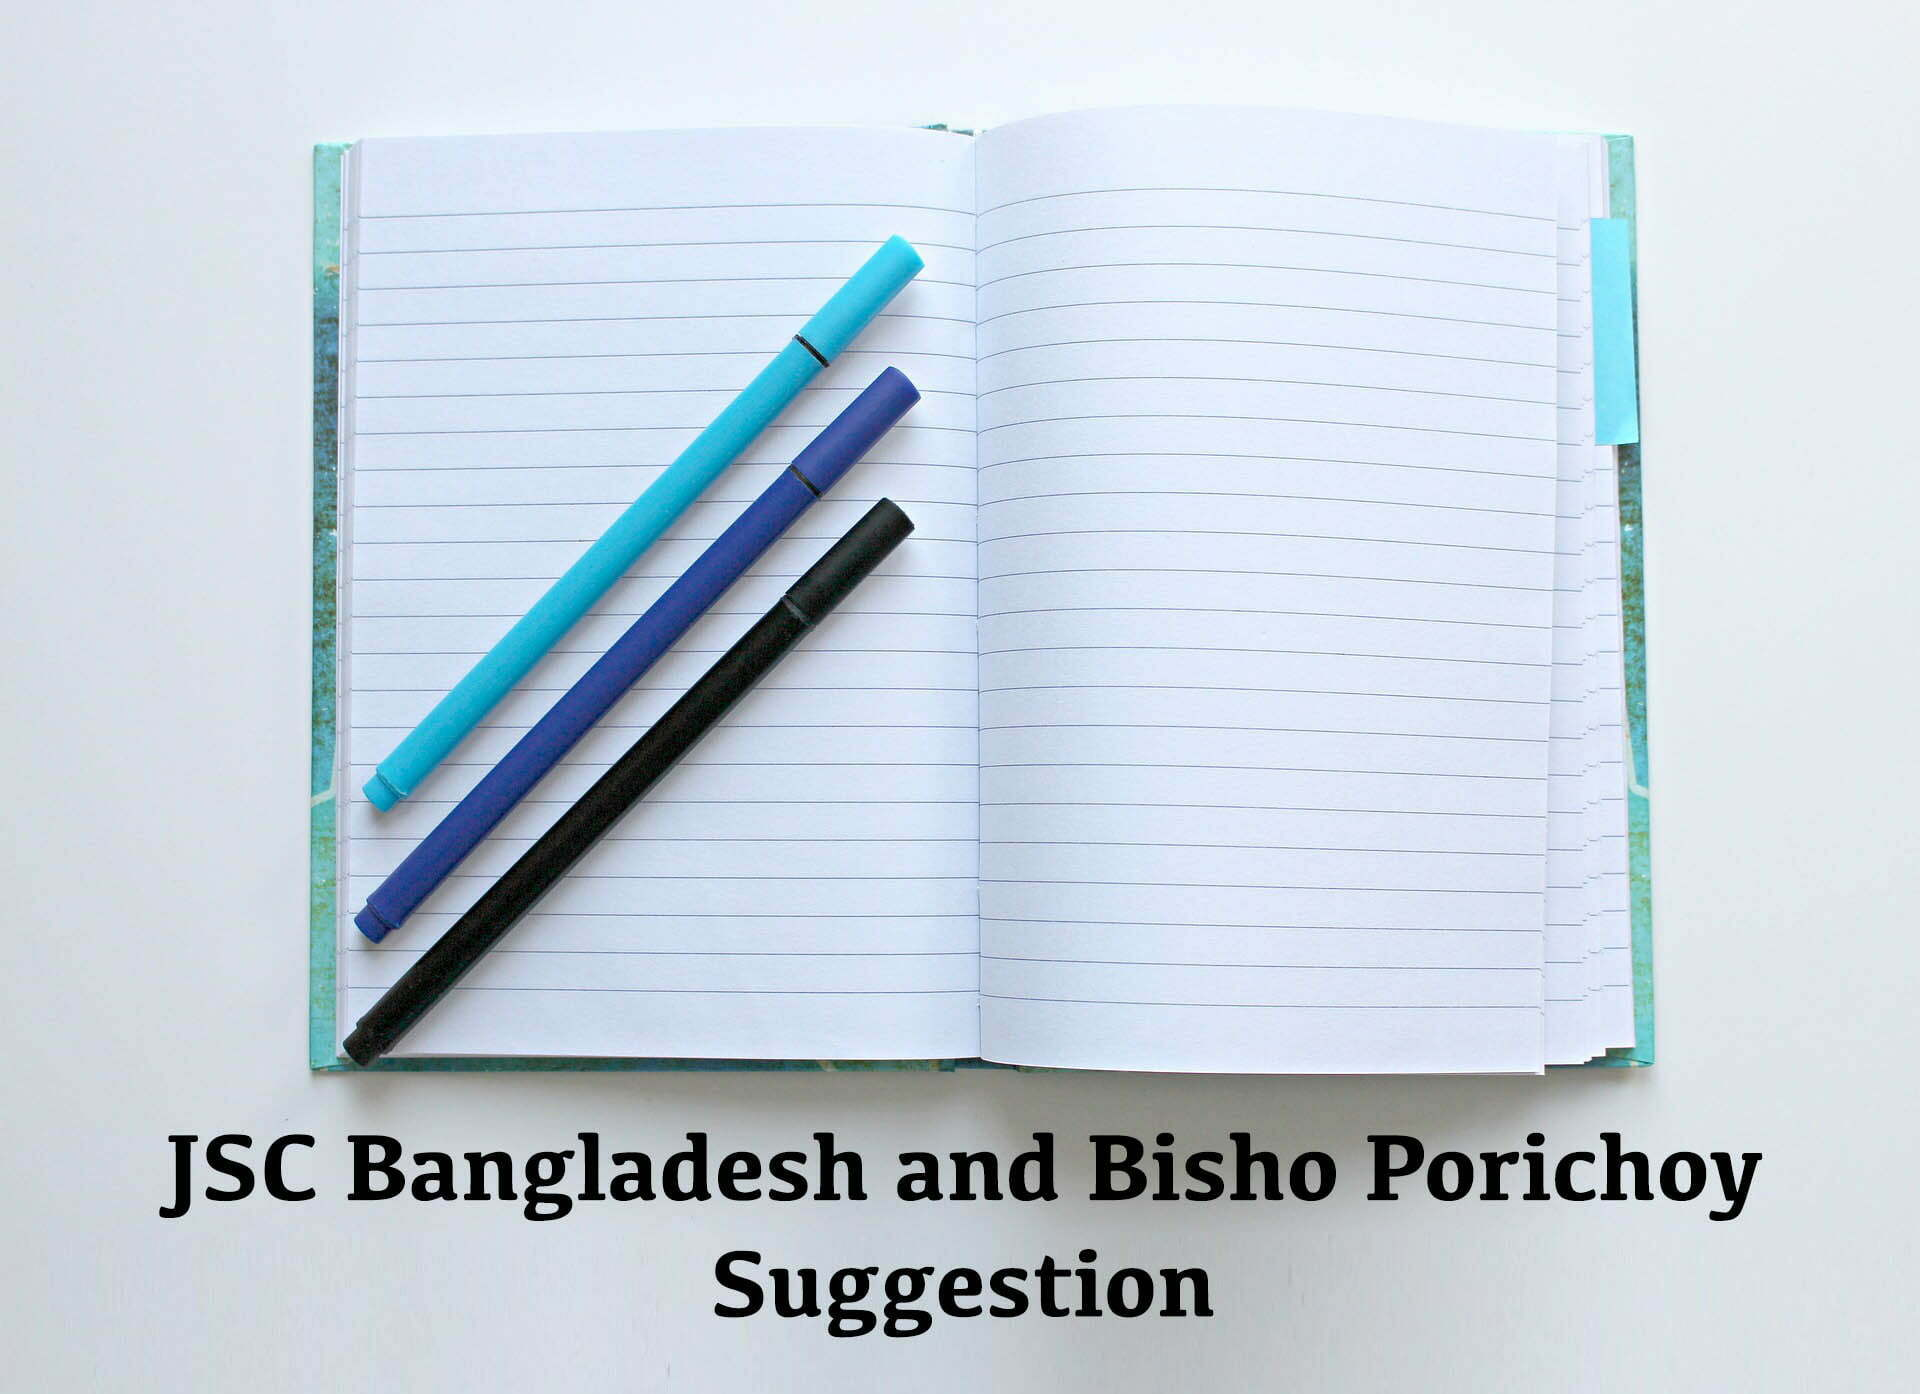 JSC Bangladesh and Bisho Porichoy Suggestion